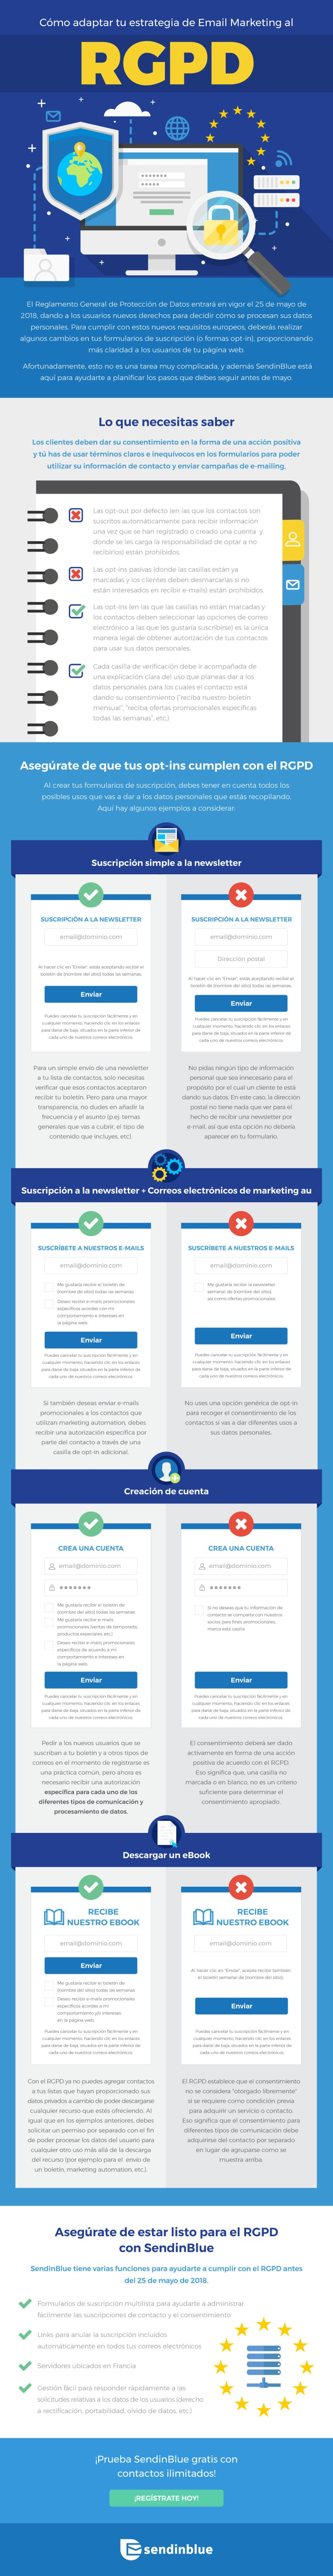 Cómo adaptar tu estrategia de Email Marketing al RGPD